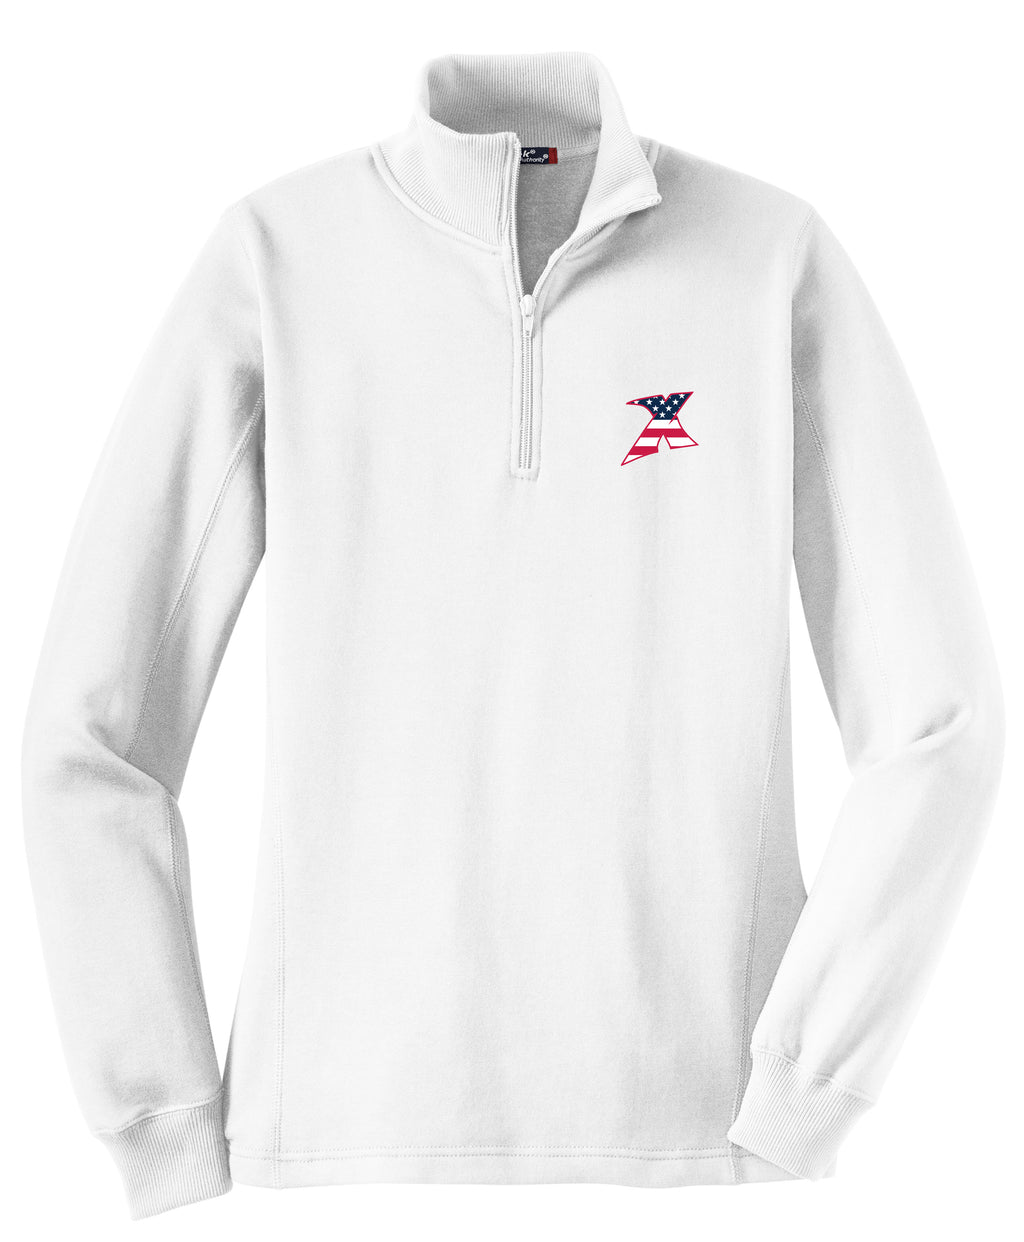 MDX Women's White 1/4 Zip Fleece